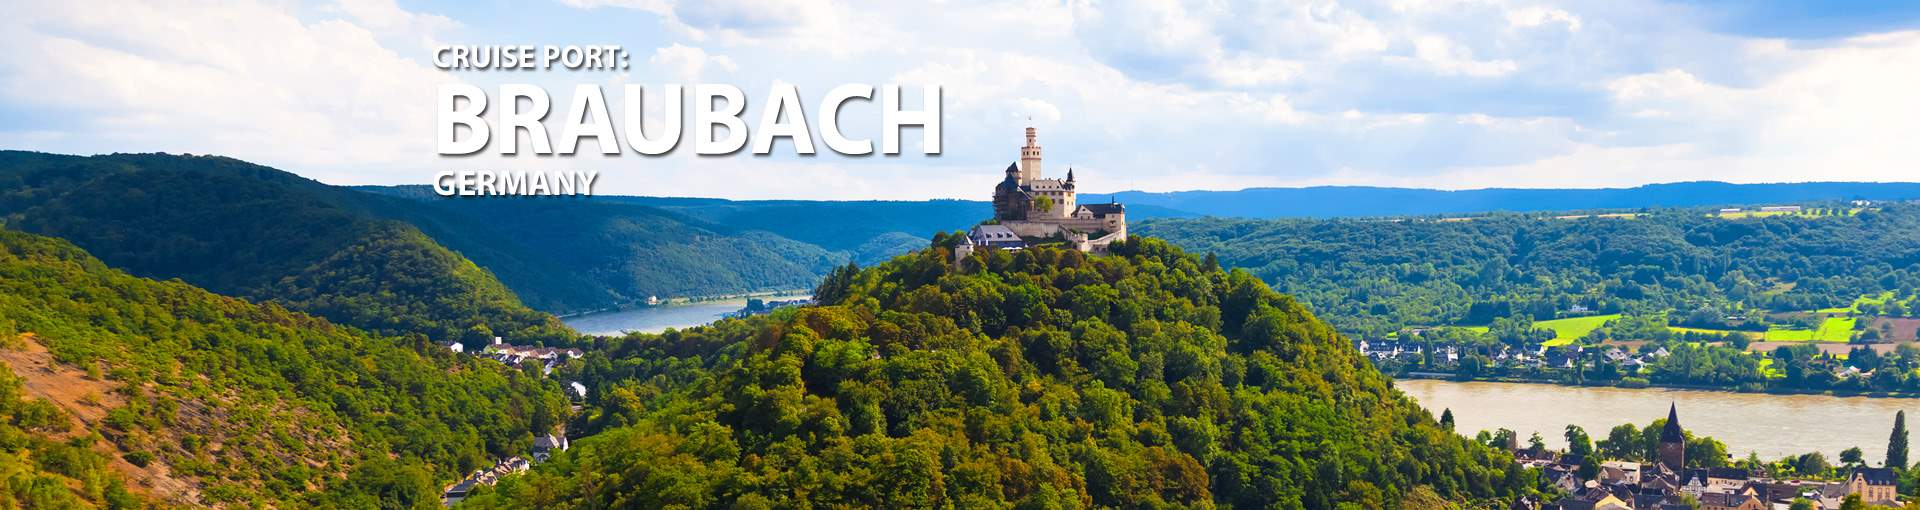 Cruises to Braubach, Germany